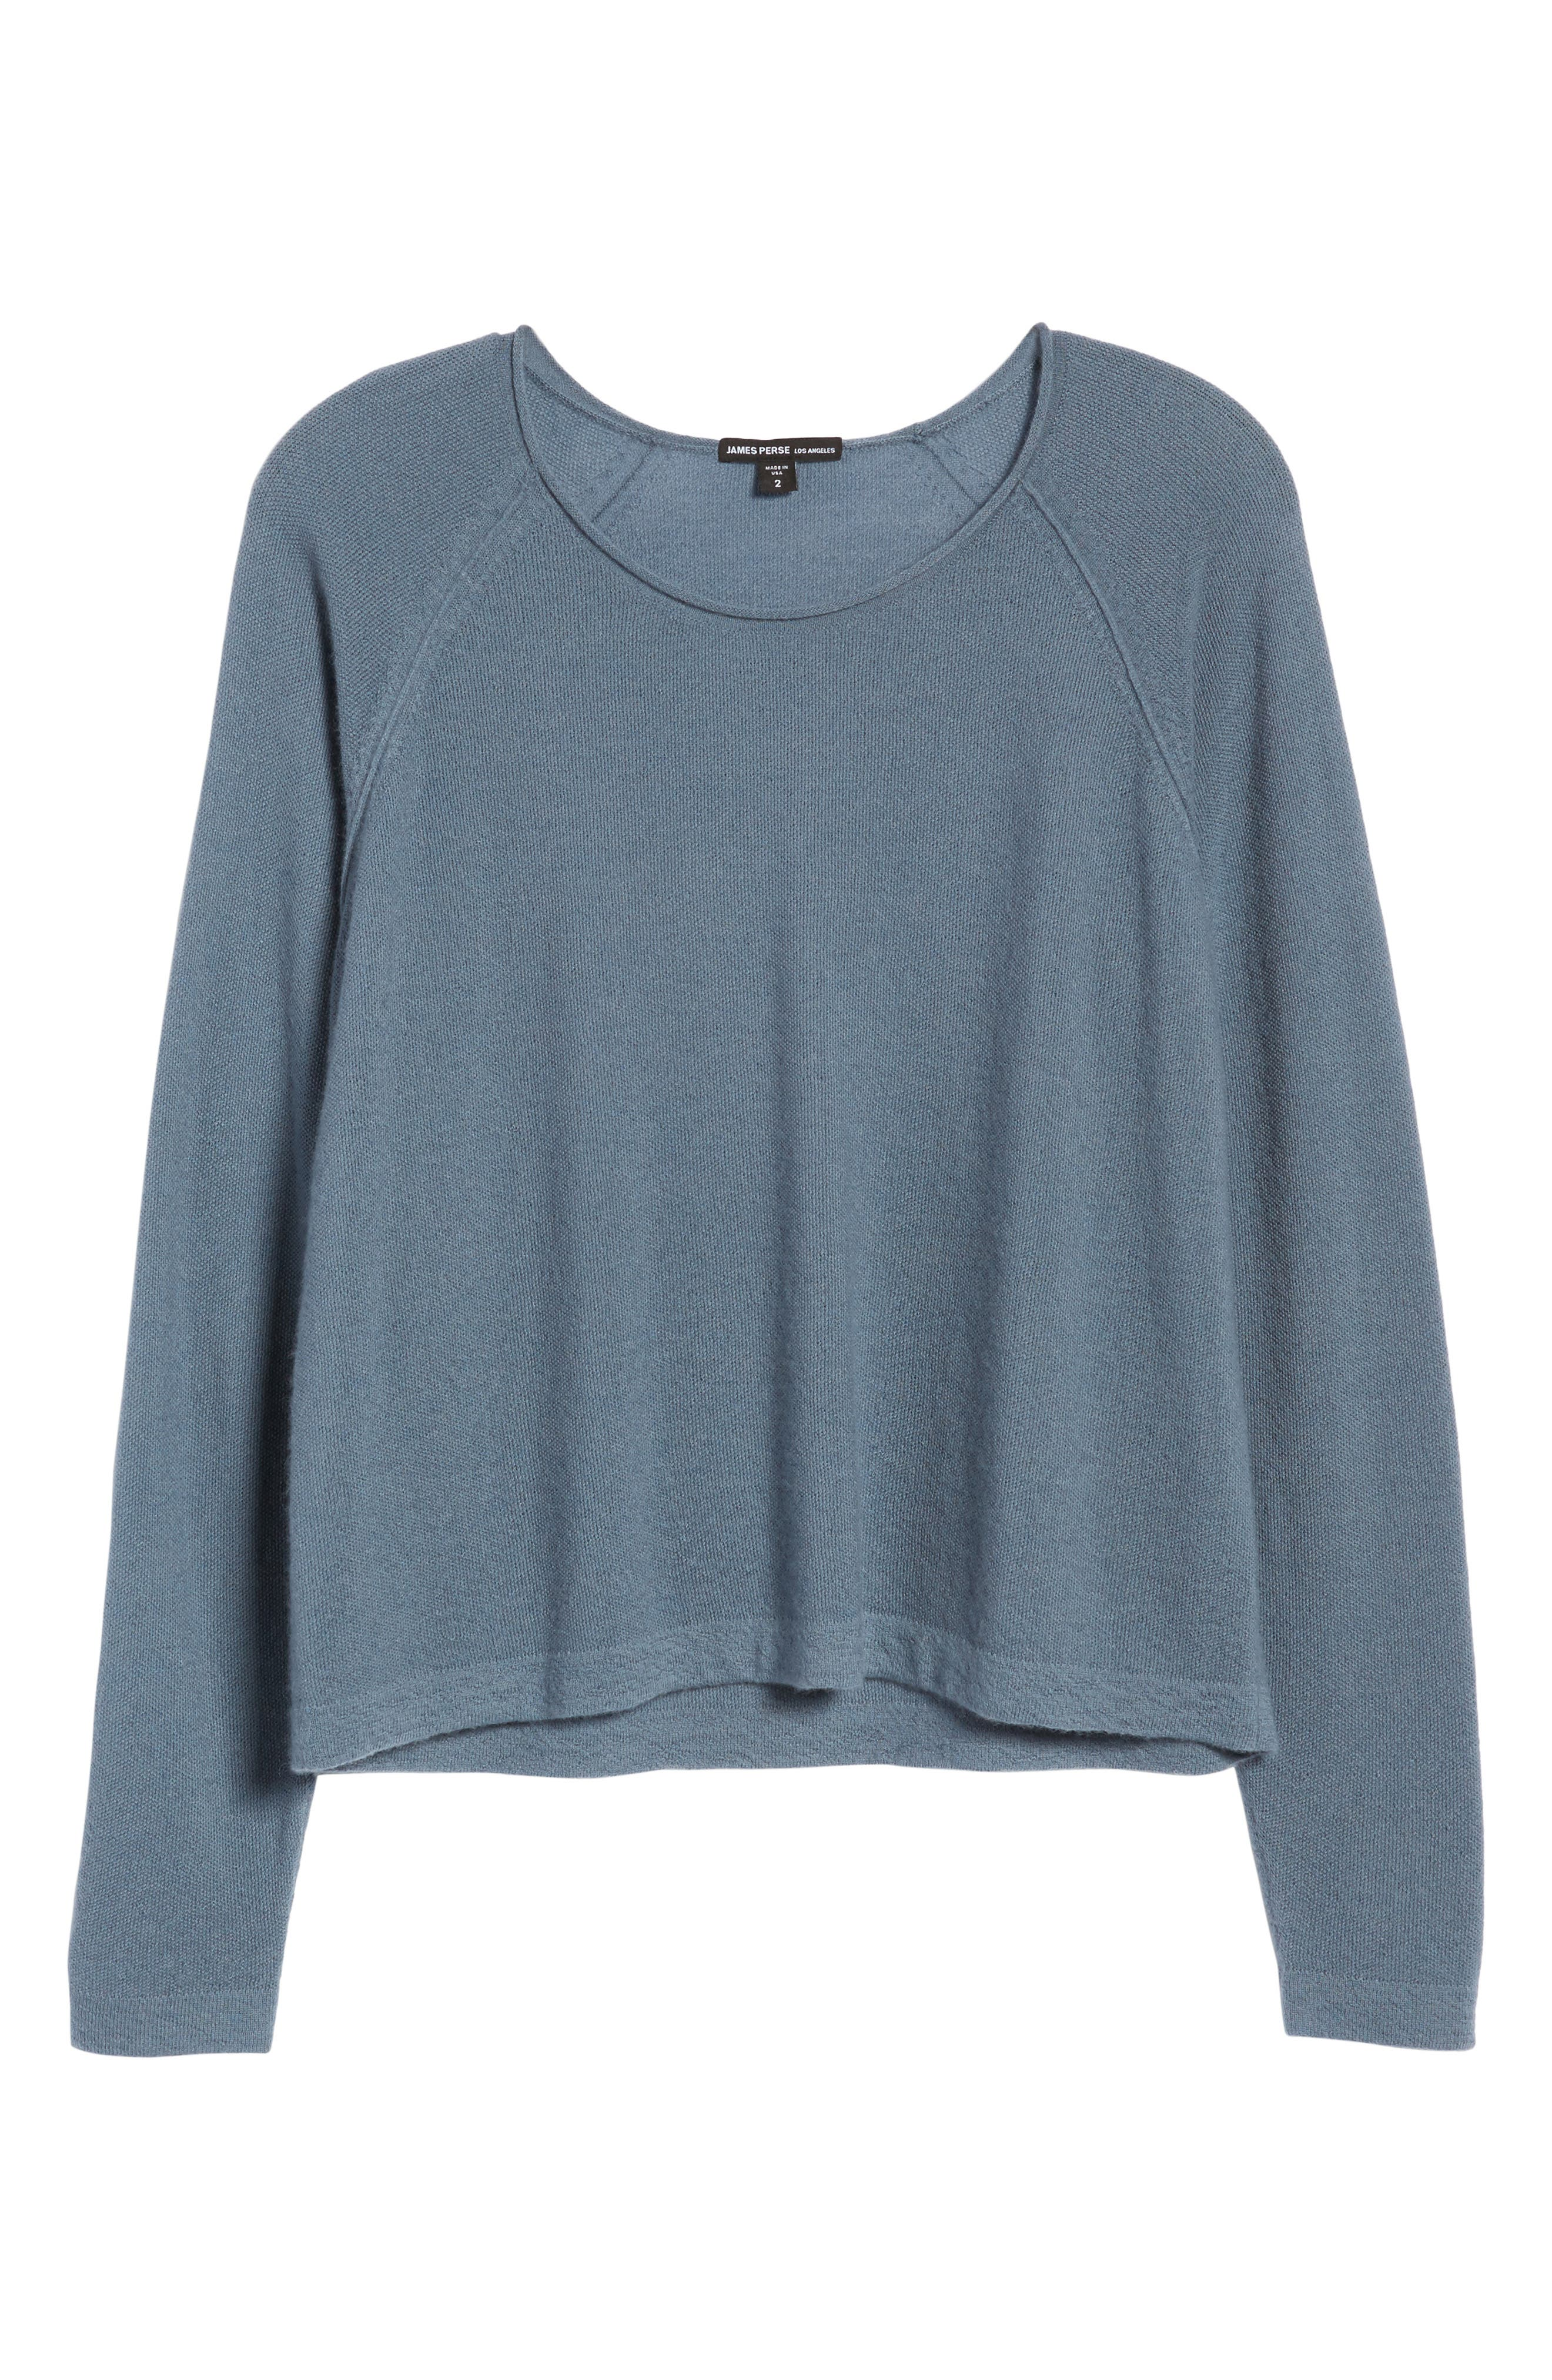 Cashmere Sweater,                             Alternate thumbnail 7, color,                             Heather Cruise